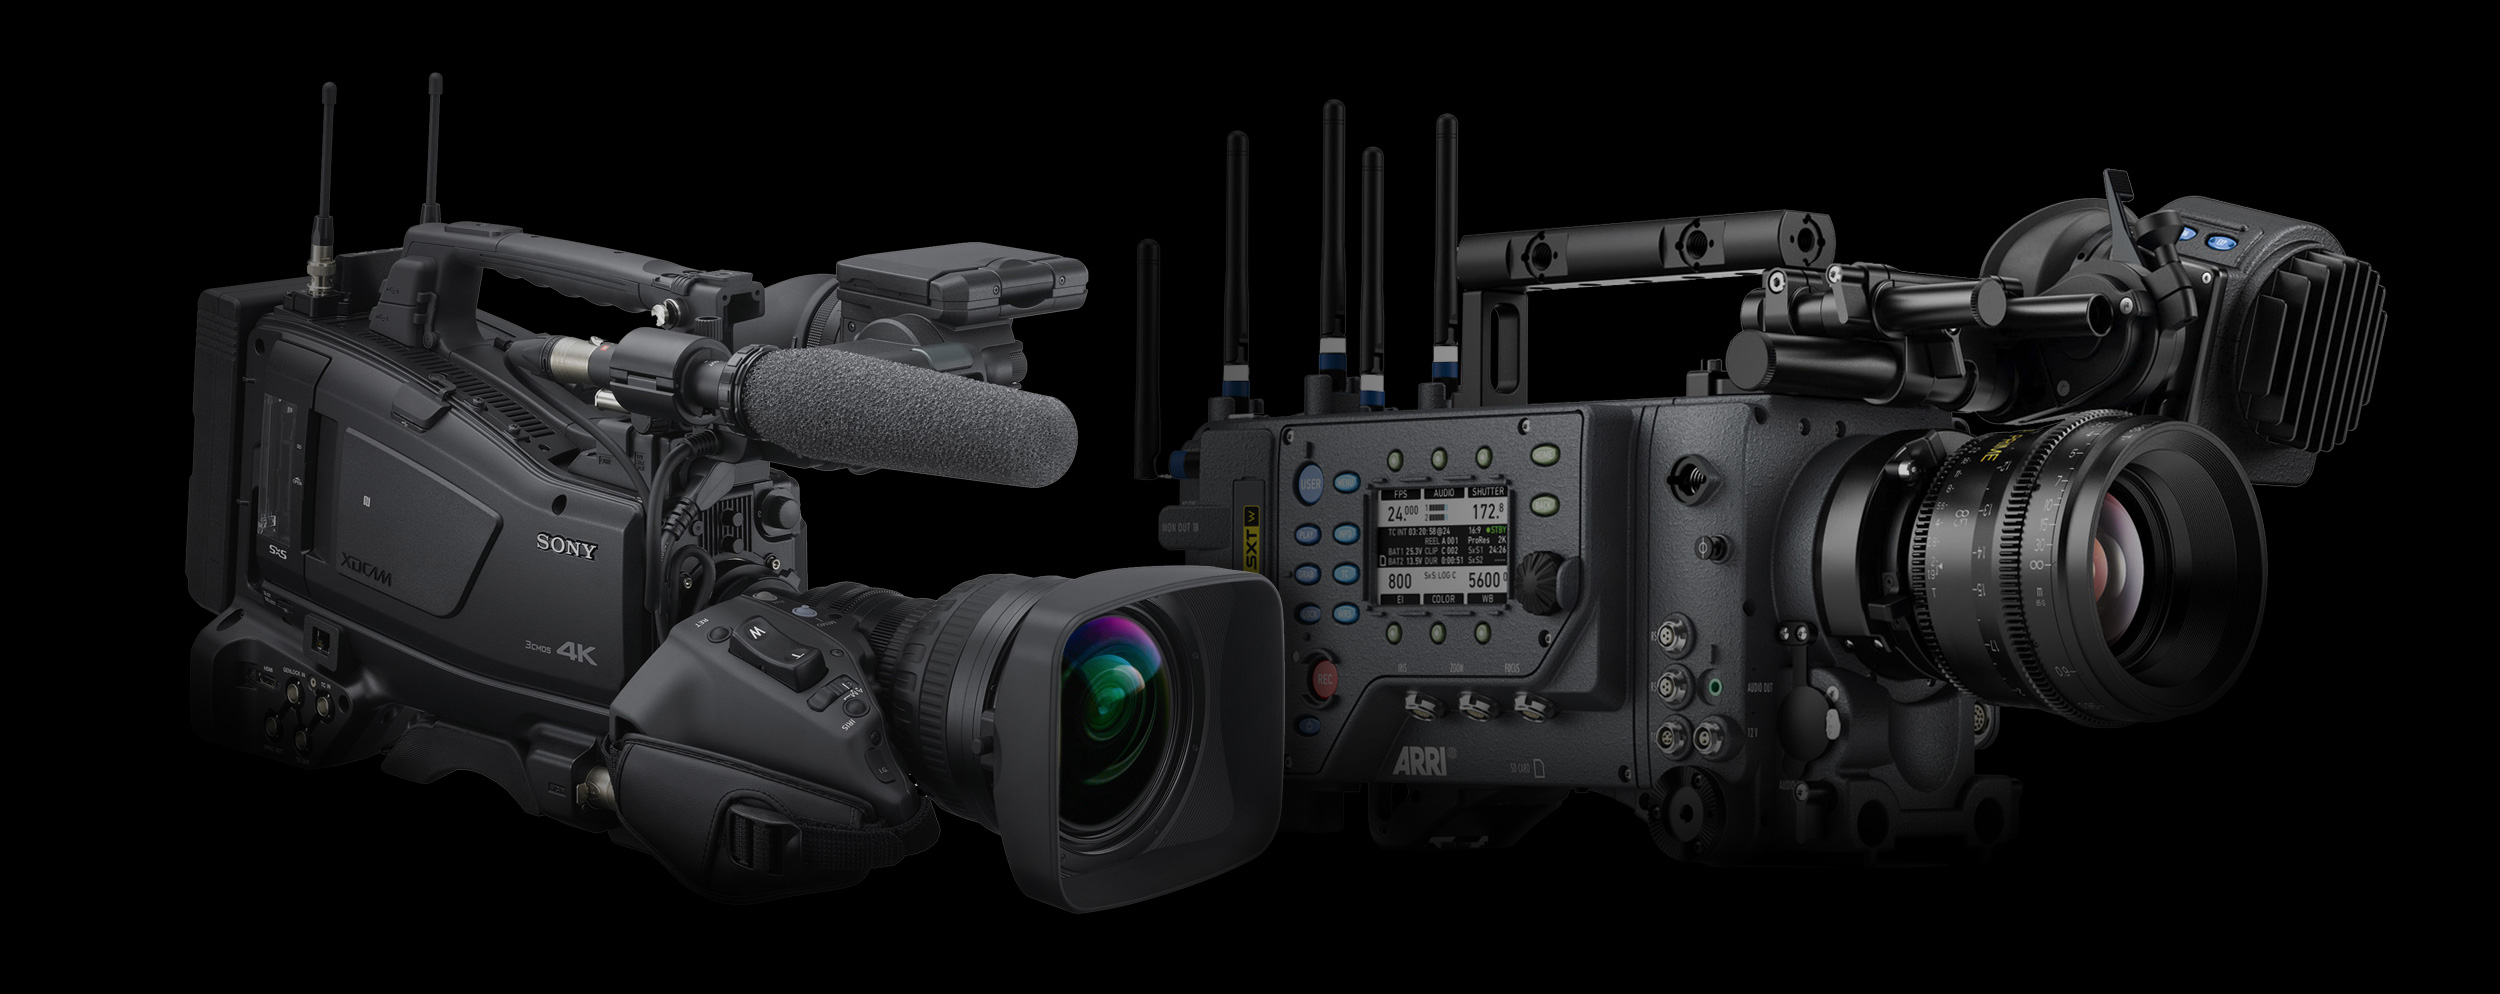 Sony PXW-Z750 and ARRI Alexa SXT W Video Cameras